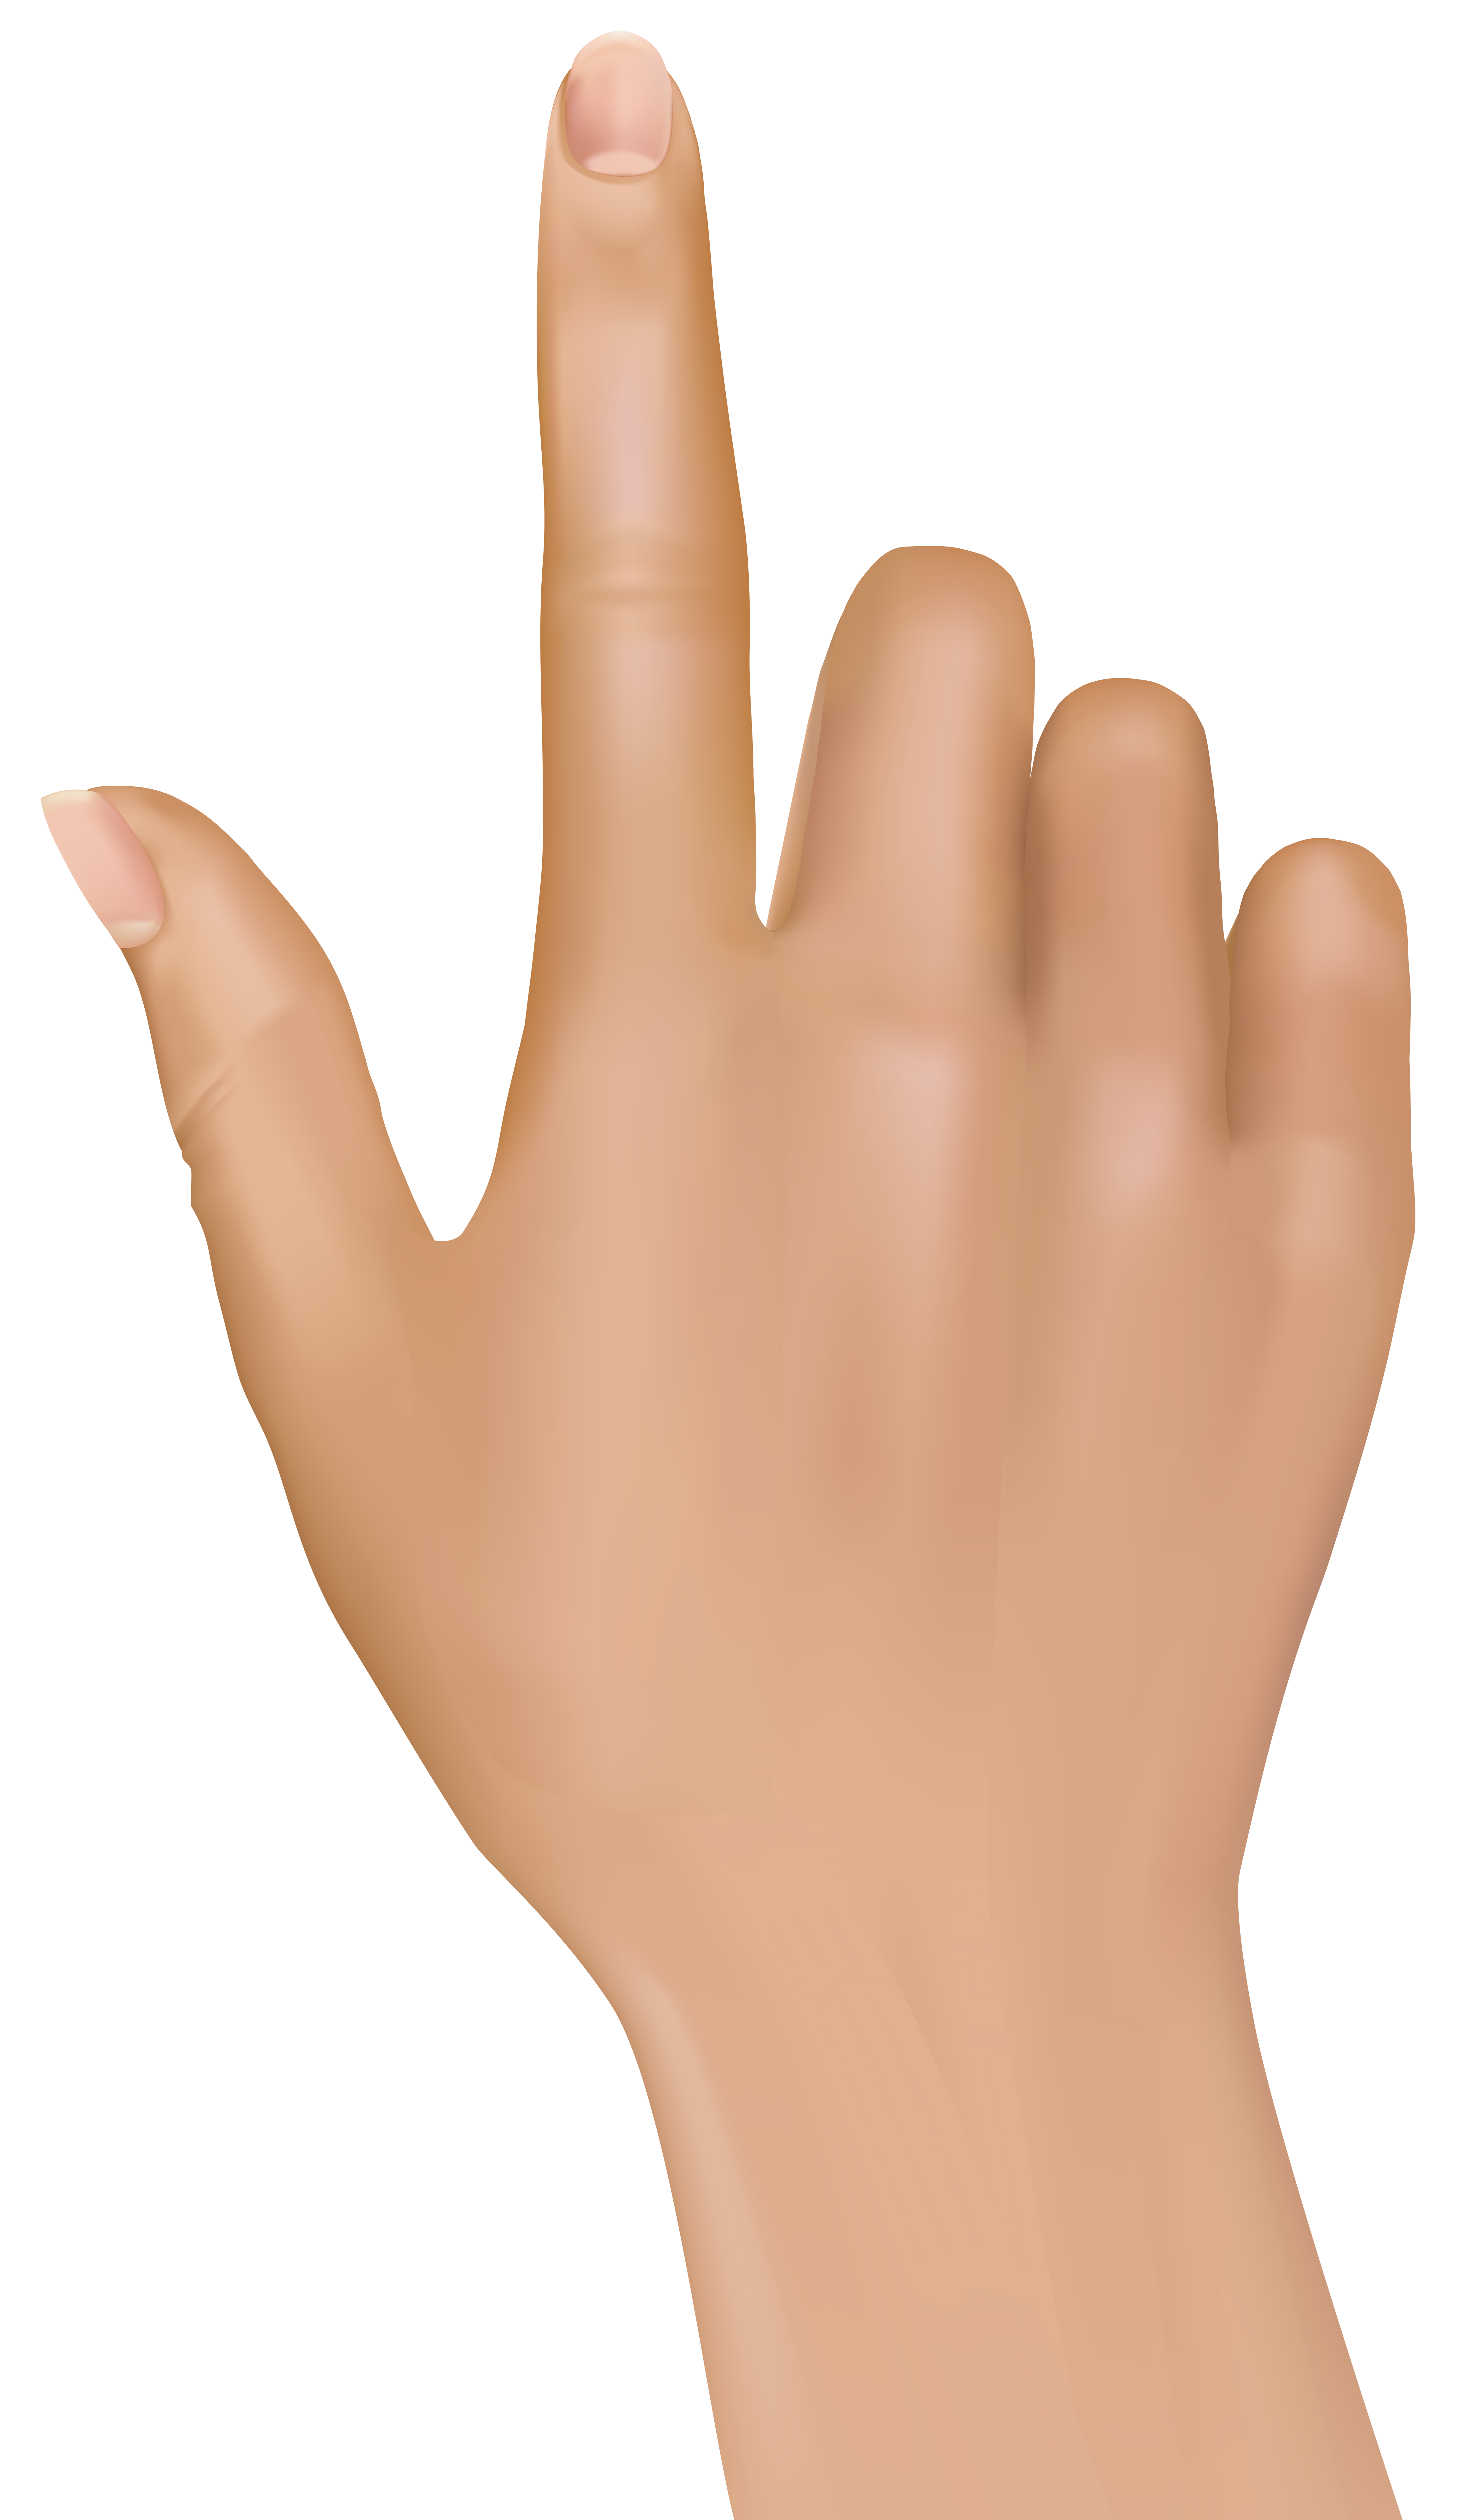 Tuching finger clip art. Hand png banner freeuse library